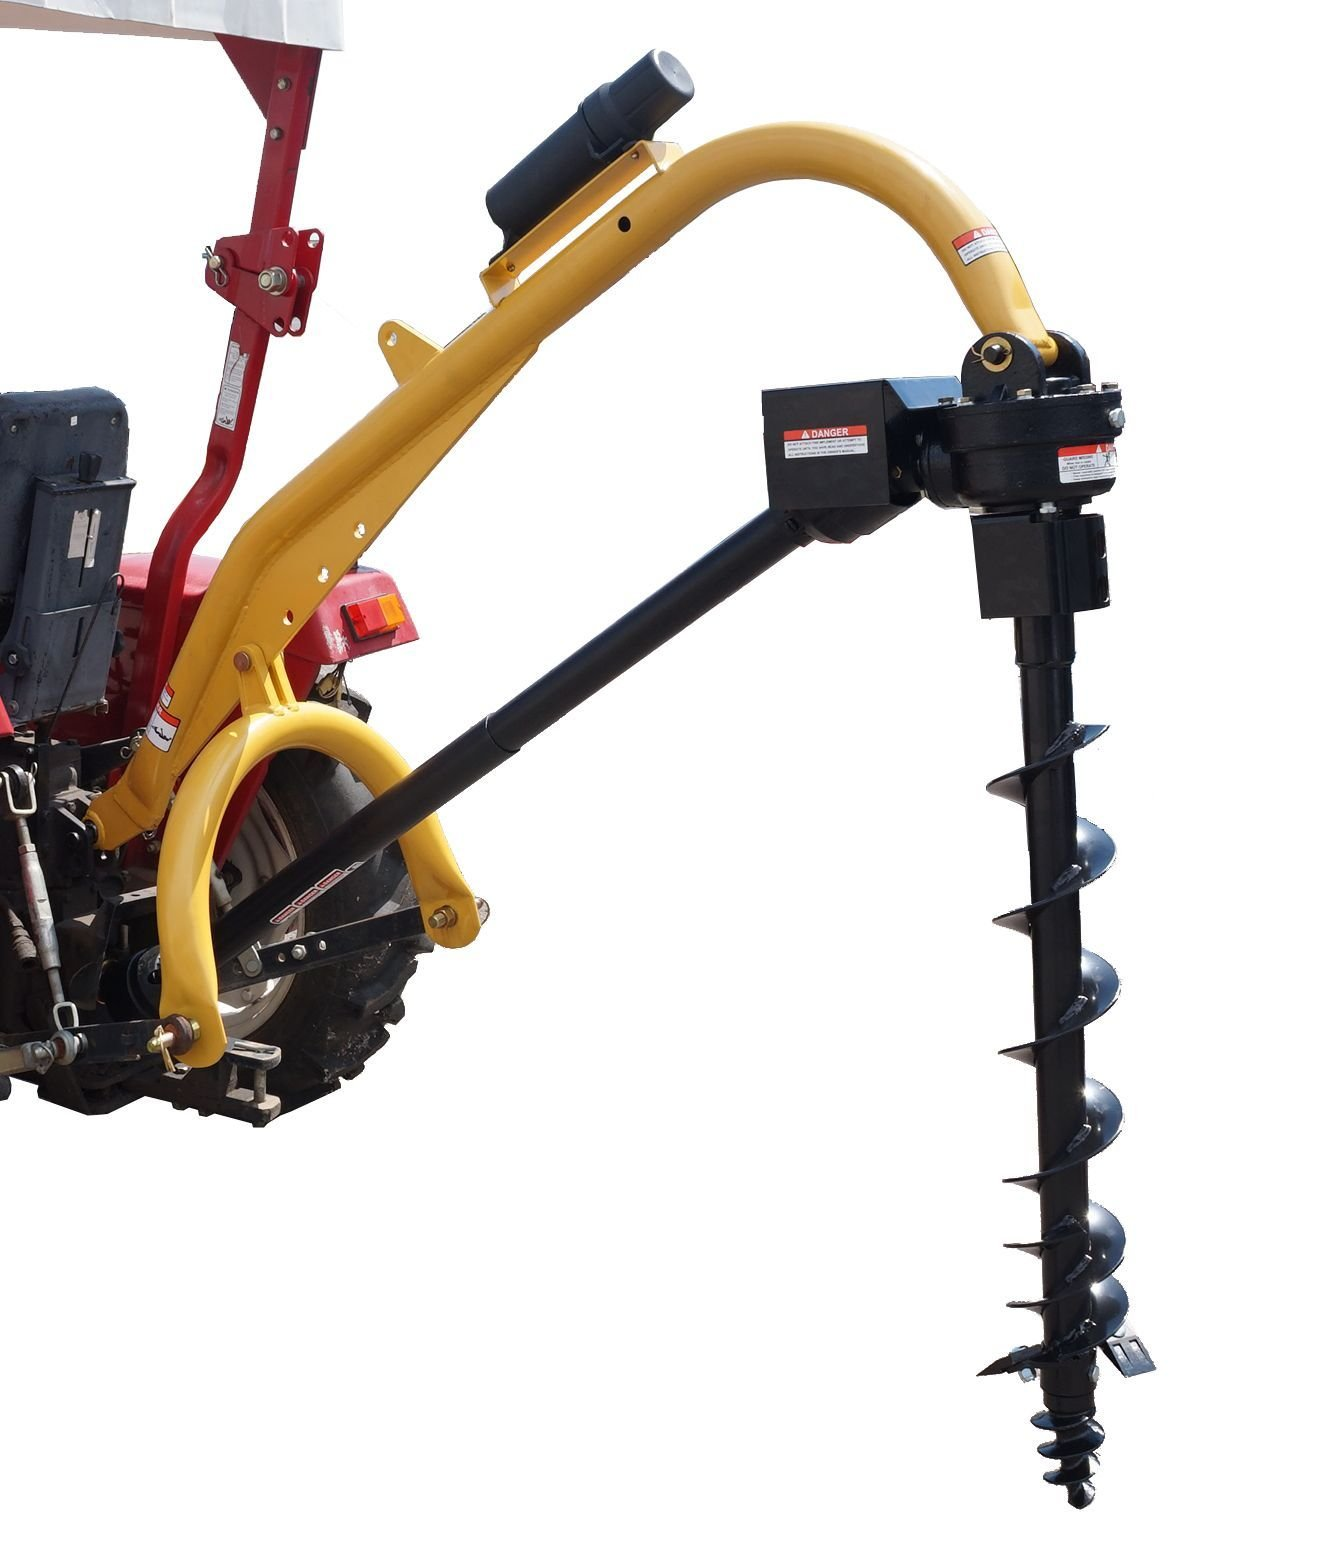 AgKNX 3 Point Post Hole Digger Model 1000 (without bit)